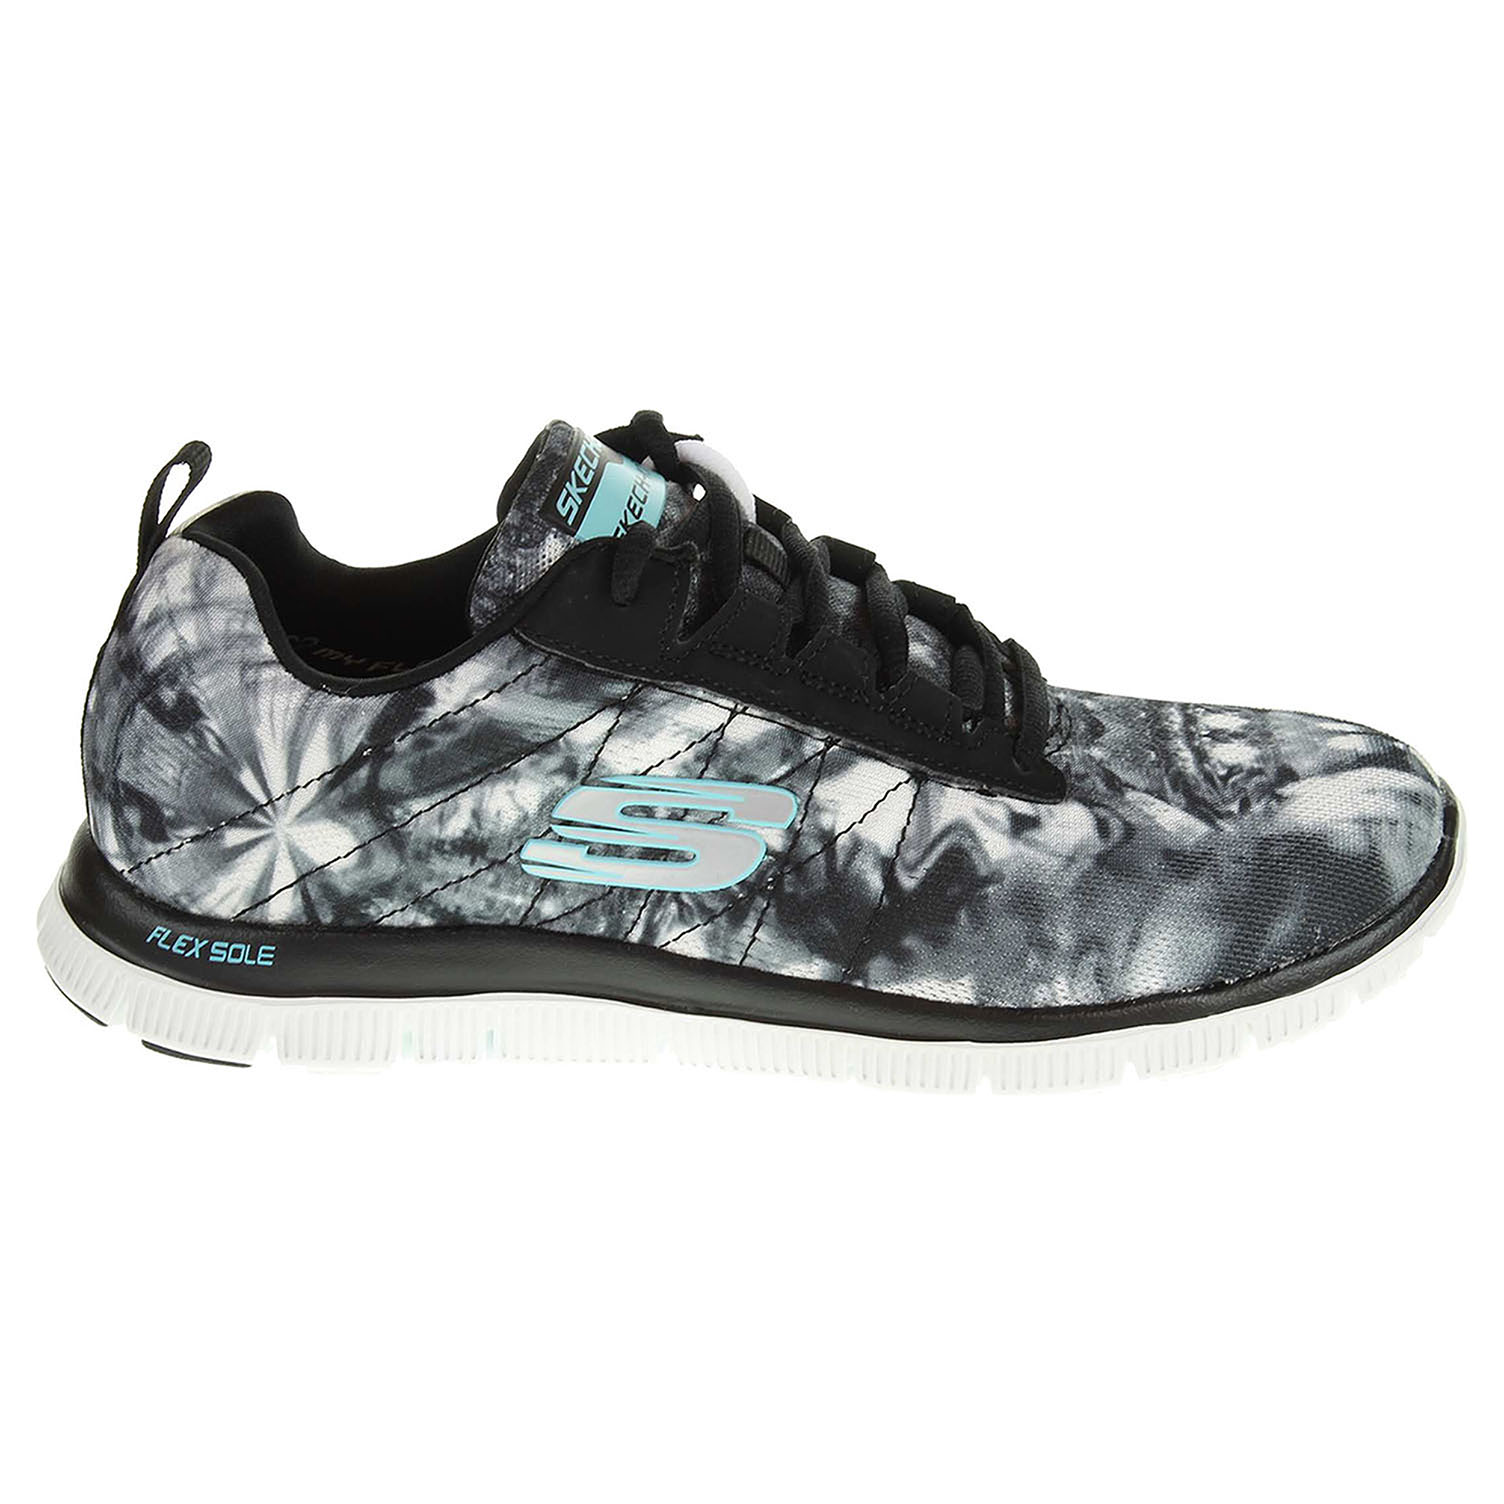 Skechers Cosmic Rays black-white 39